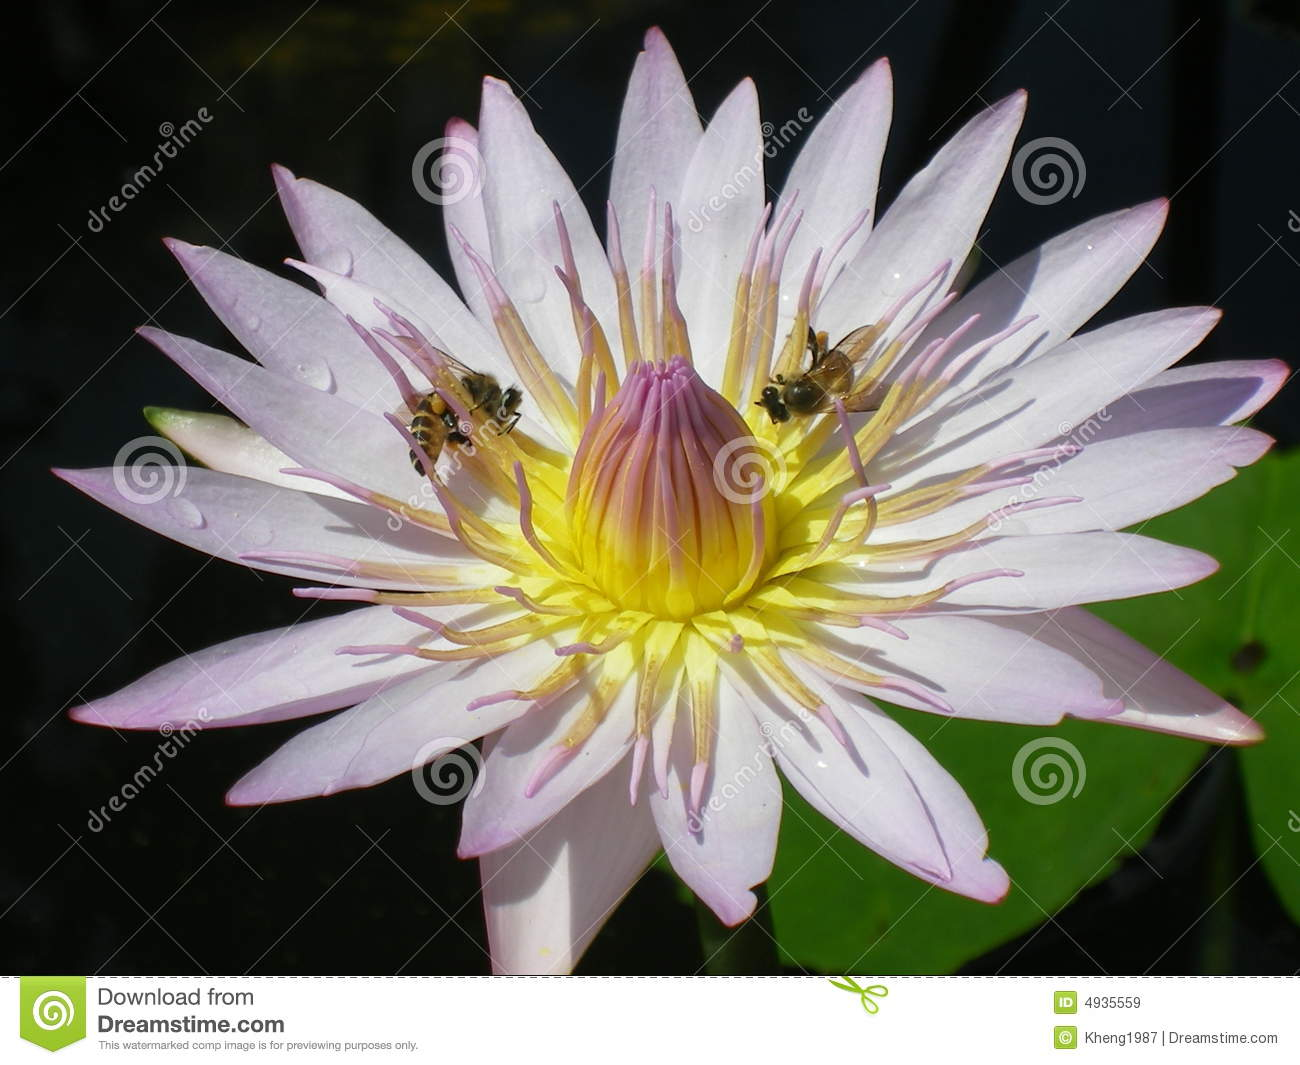 Bees and Lotus